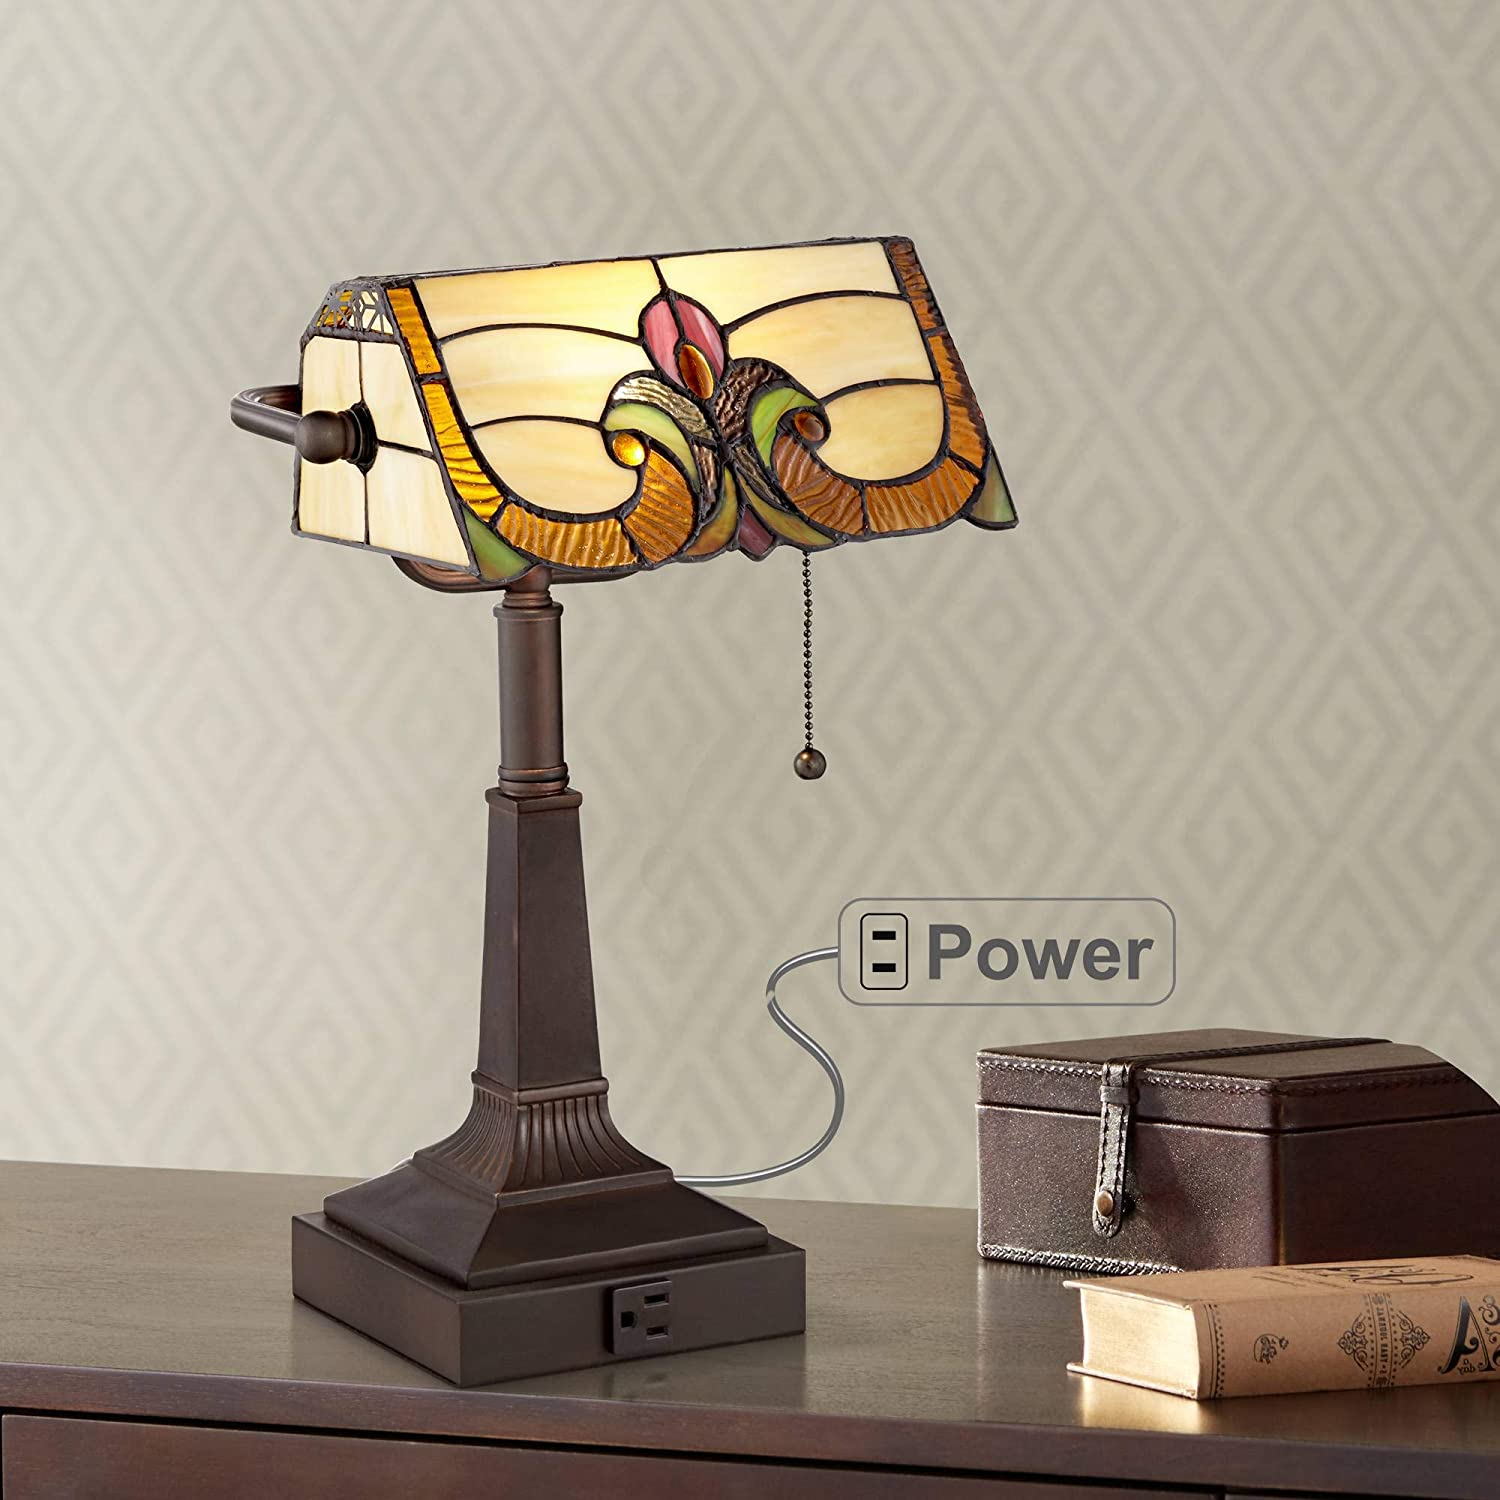 """Fleura Traditional Piano Banker Desk Table Lamp 17"""" High with AC Power Outlet Bronze Tiffany Style Floral Art Glass Shade for Bedroom Bedside Nightstand Office - Robert Louis Tiffany"""